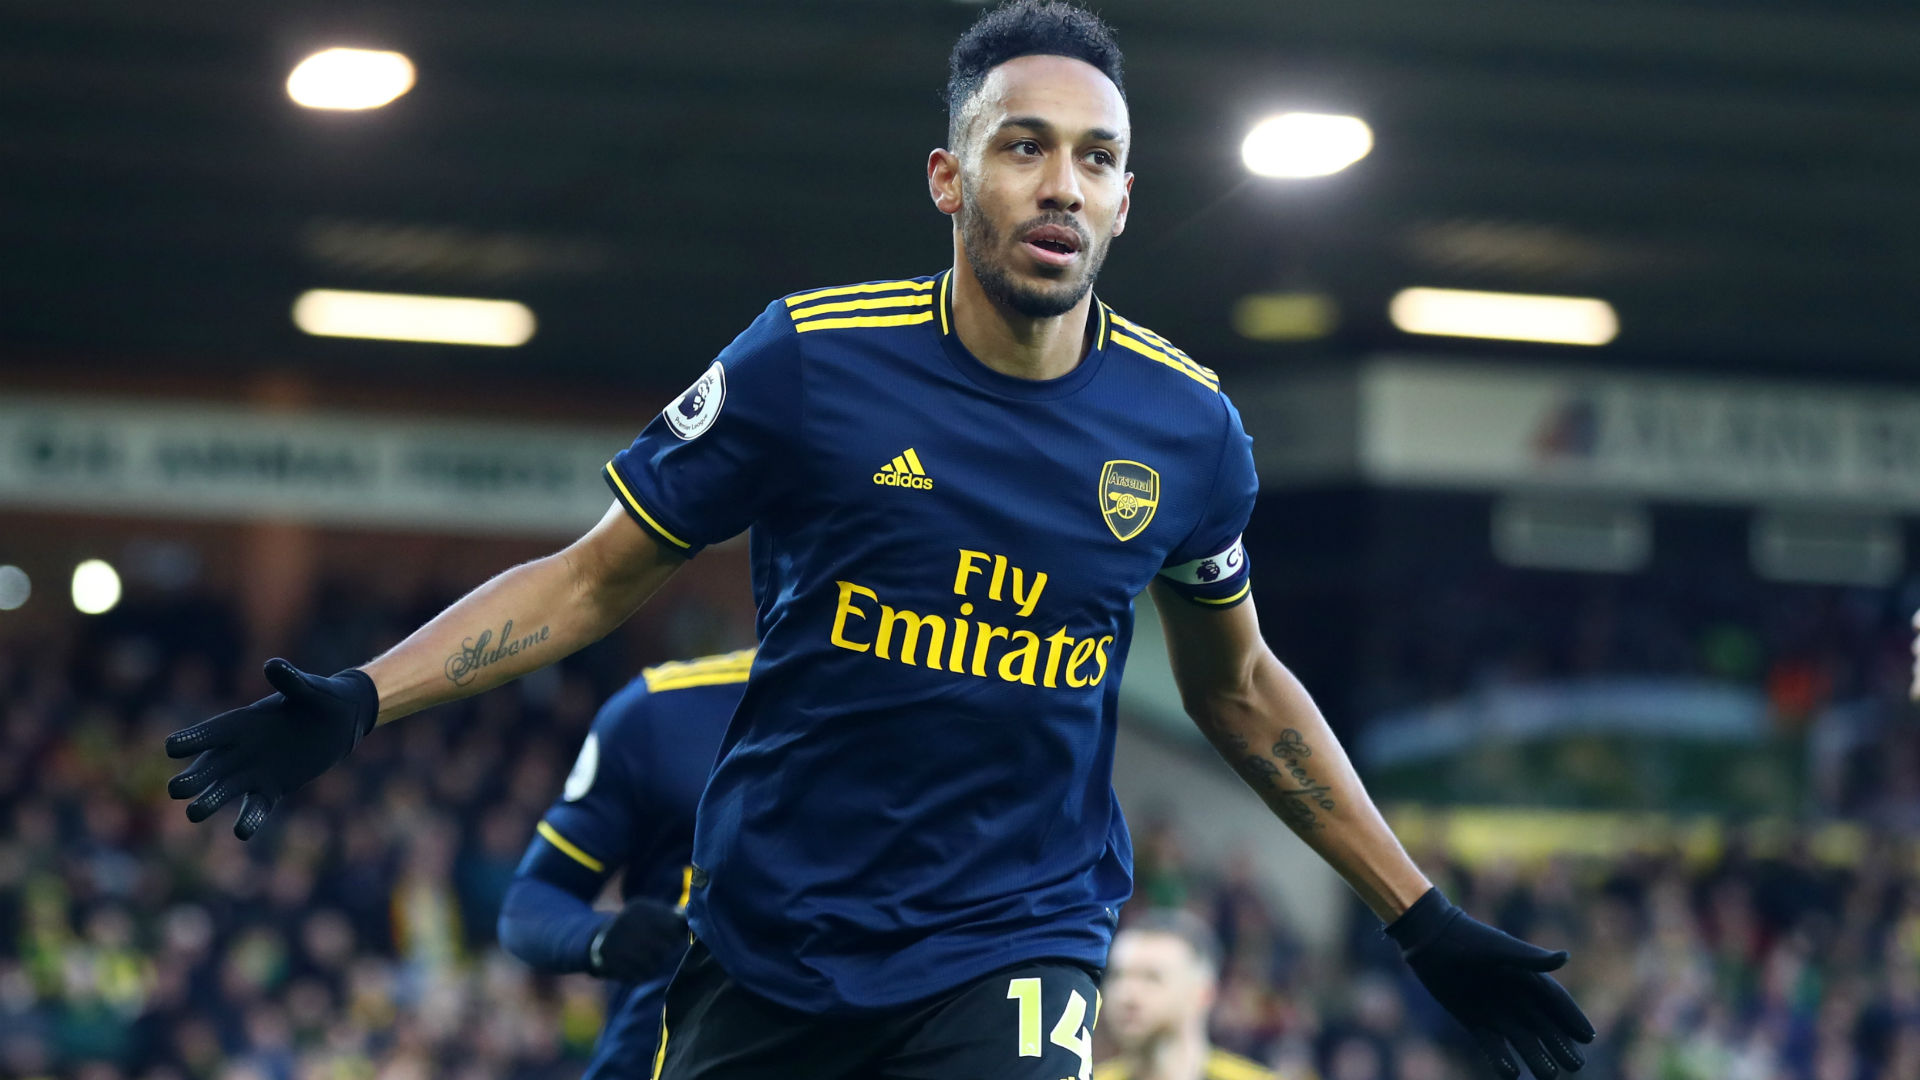 Norwich City 2-2 Arsenal: Ljungberg collects point in first game thanks to Aubameyang